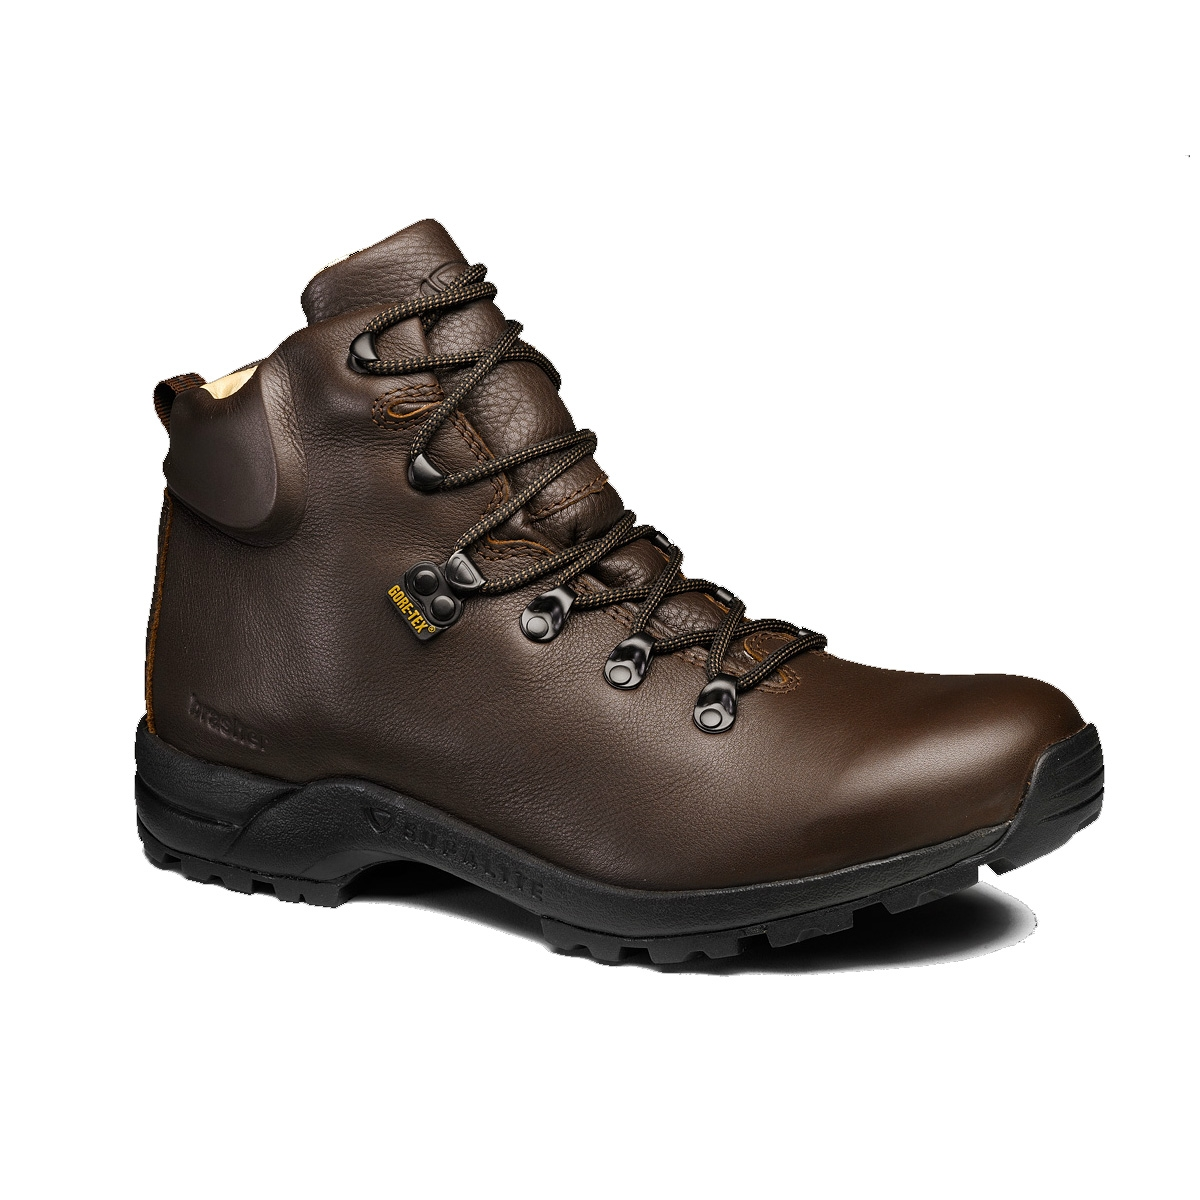 e021b146e41 Brasher Supalite II GTX Walking Boots with Pittards Leather (Women's) -  Chocolate